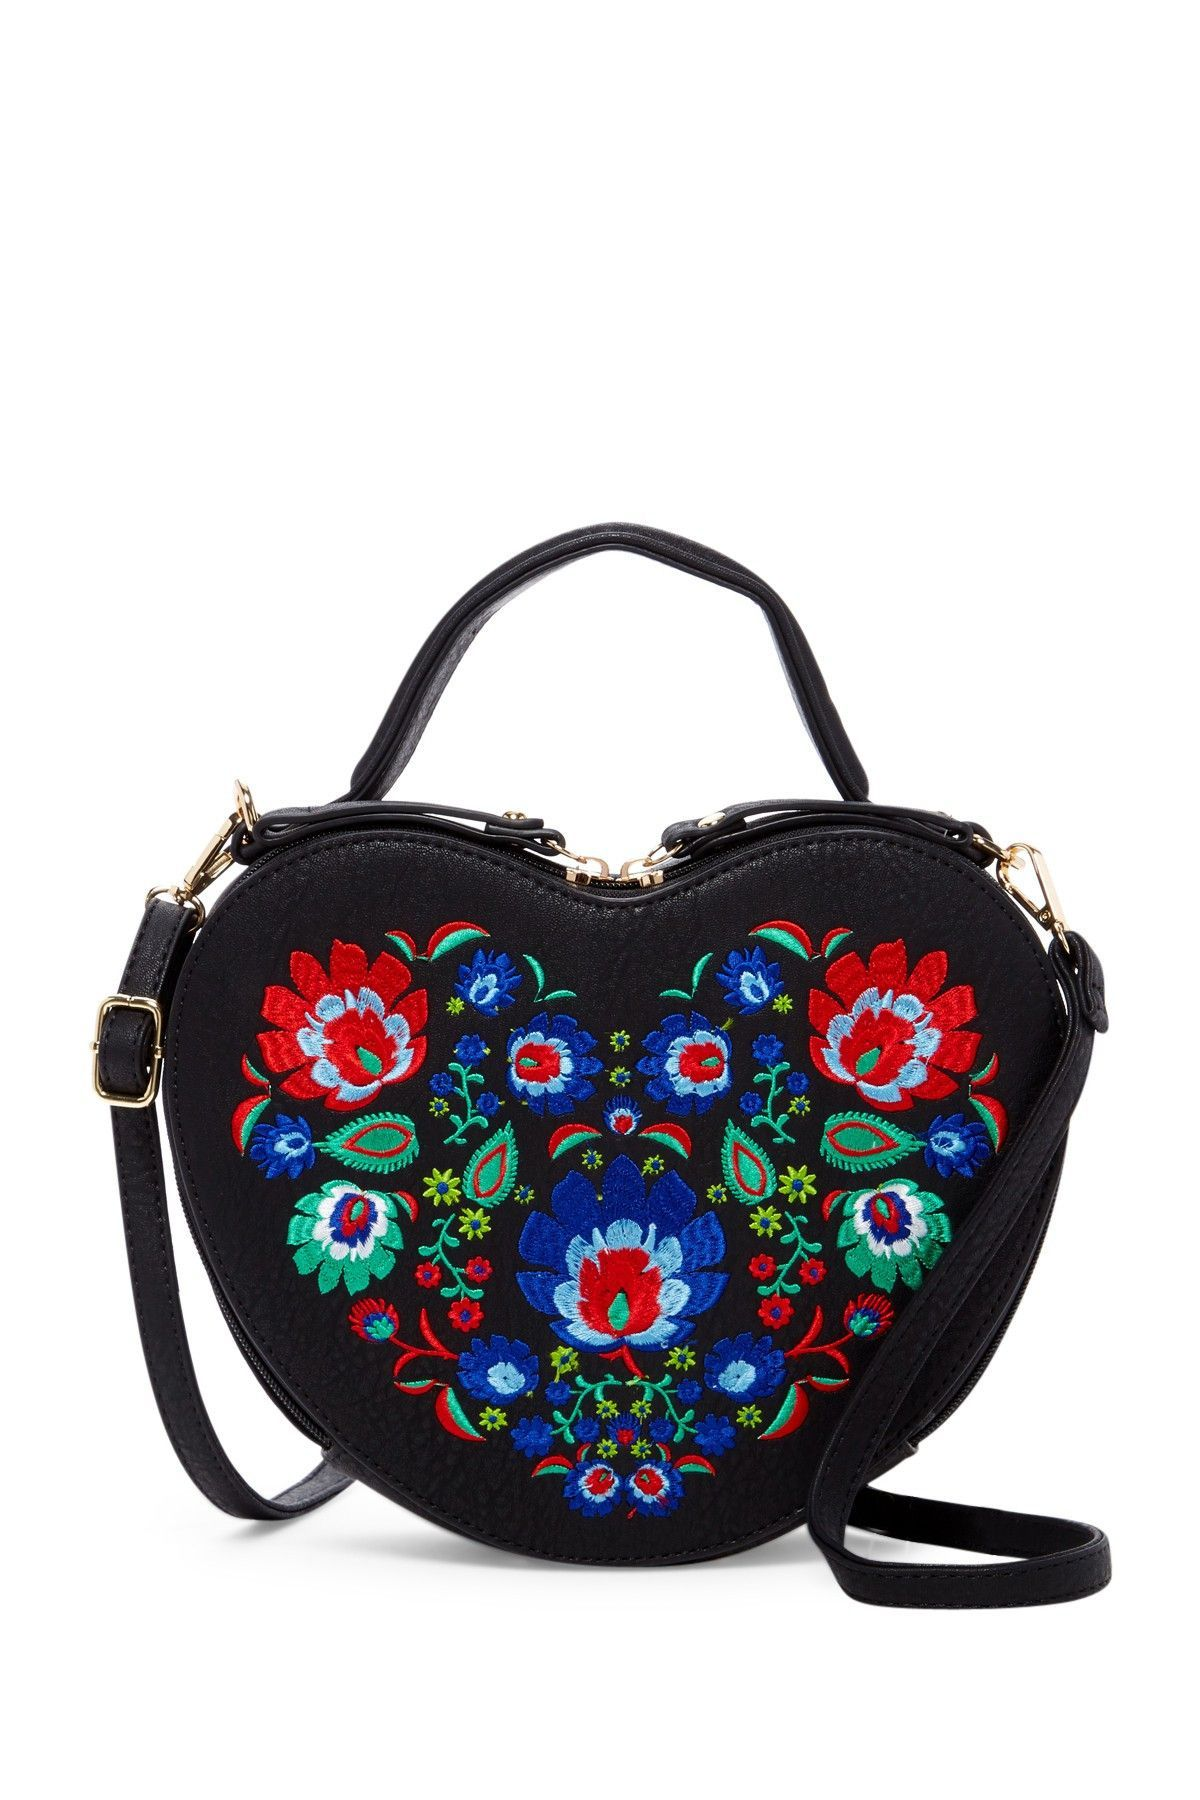 5322db9c7 Bridget Floral Embroidered Heart Crossbody In Black